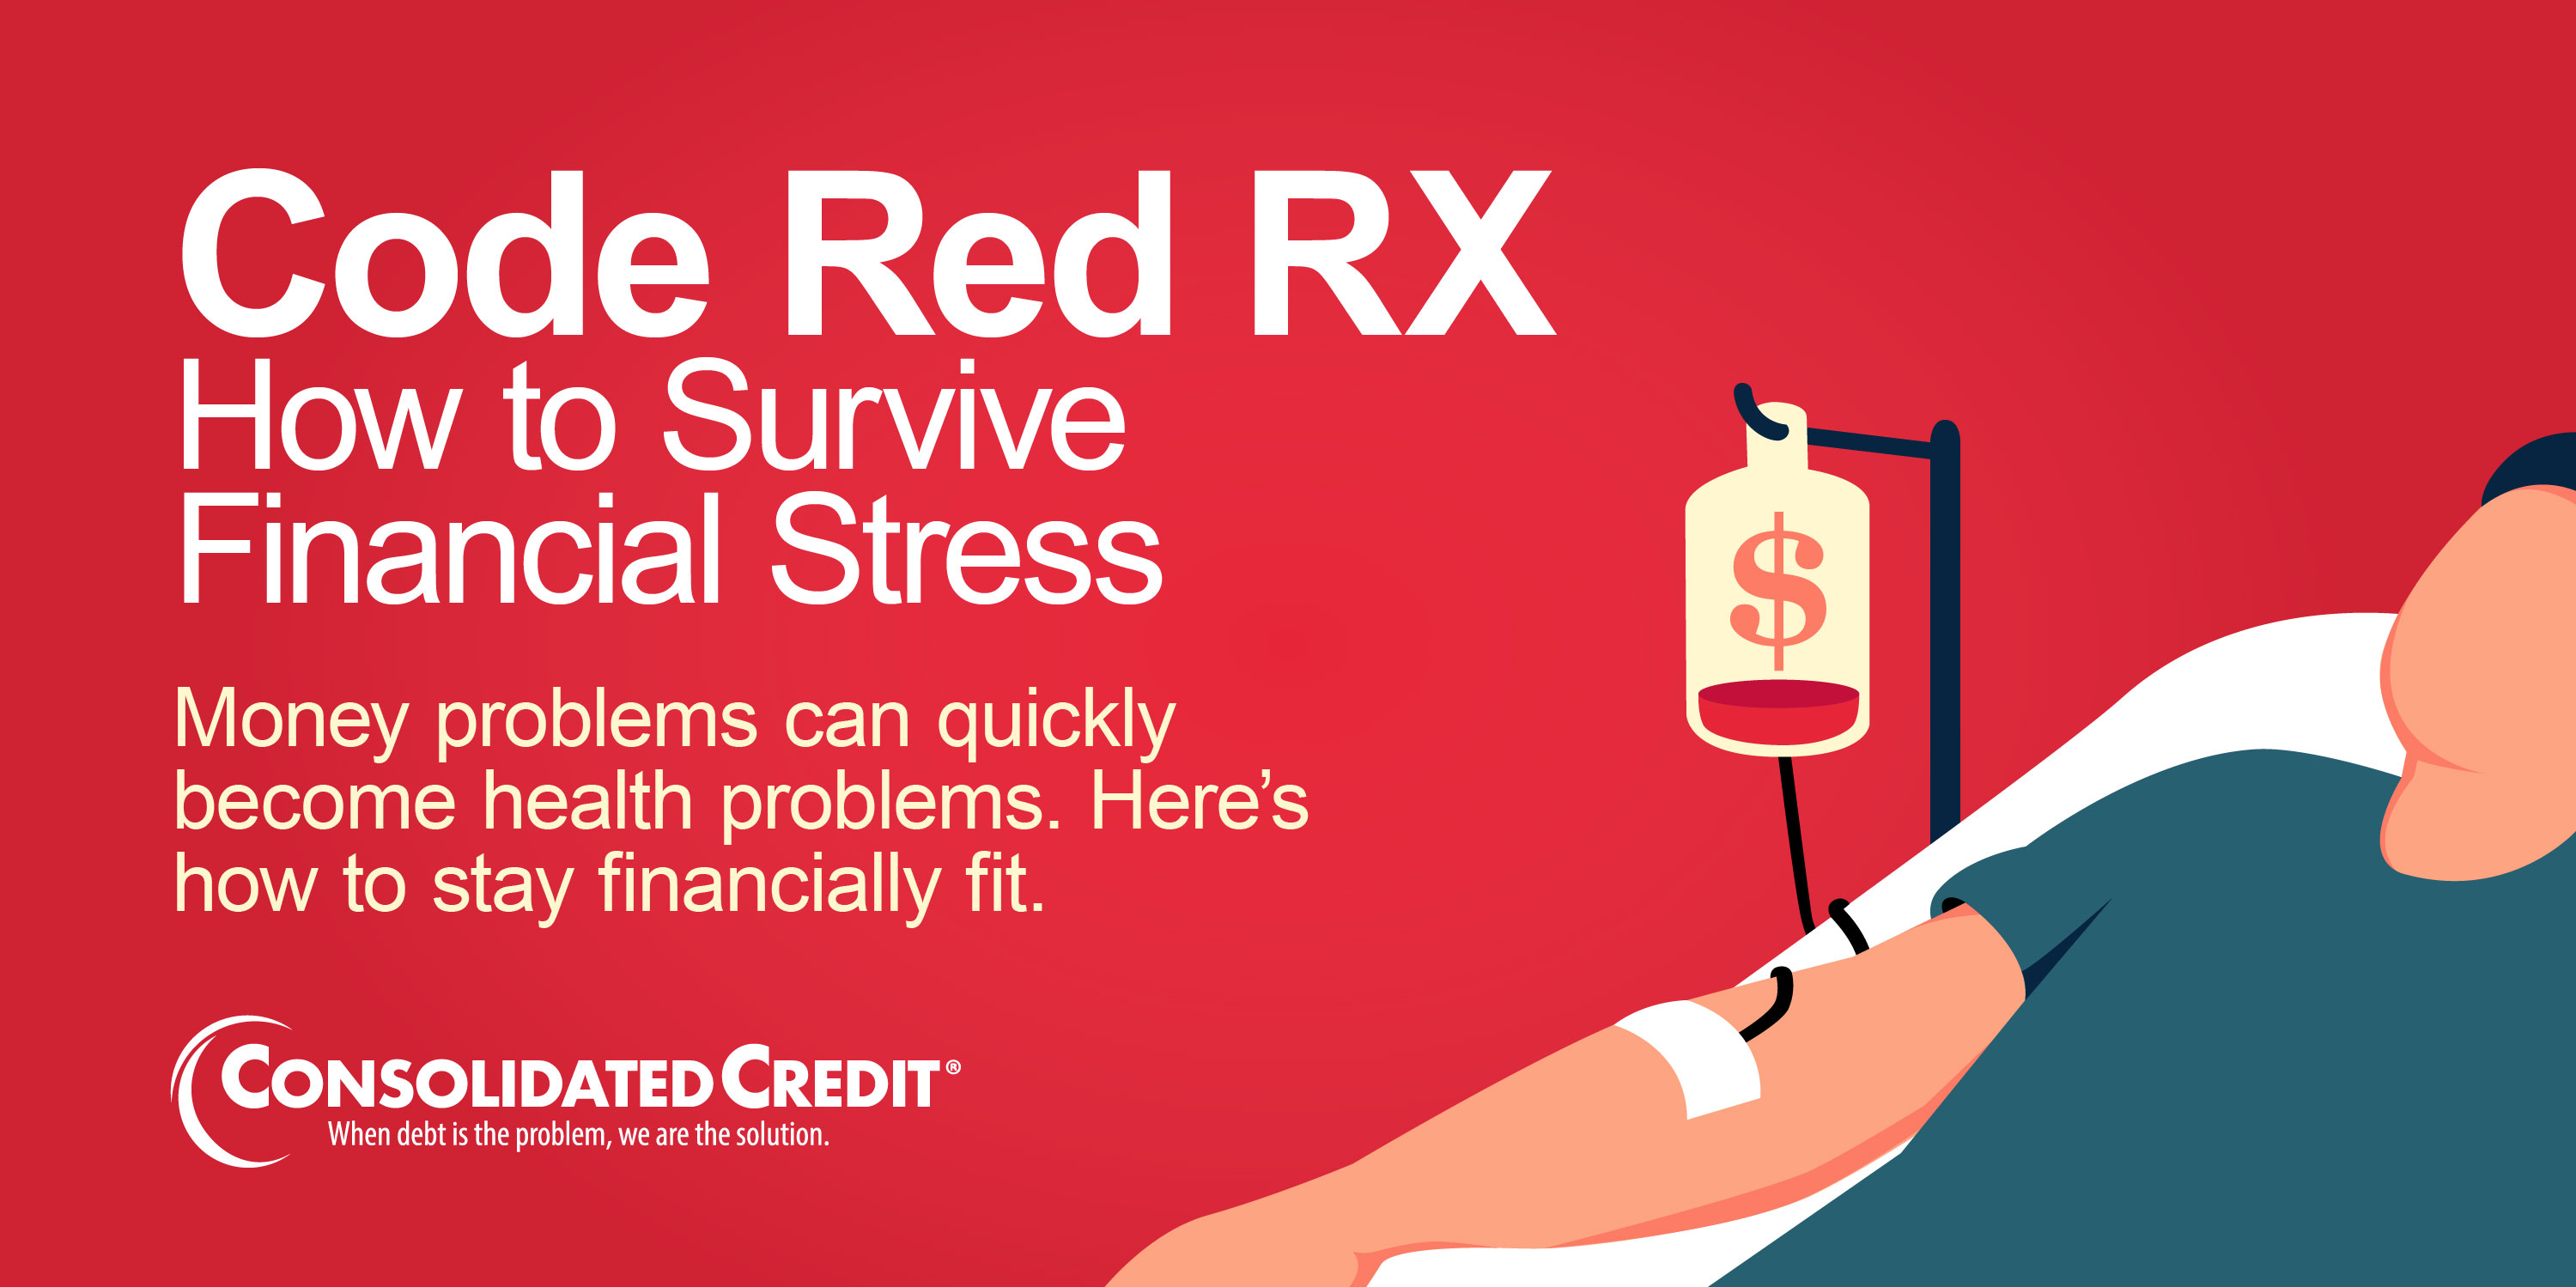 Code Red RX: How to Survive Financial Stress - Money problems can quickly become health problems. Here's how to stay financially fit